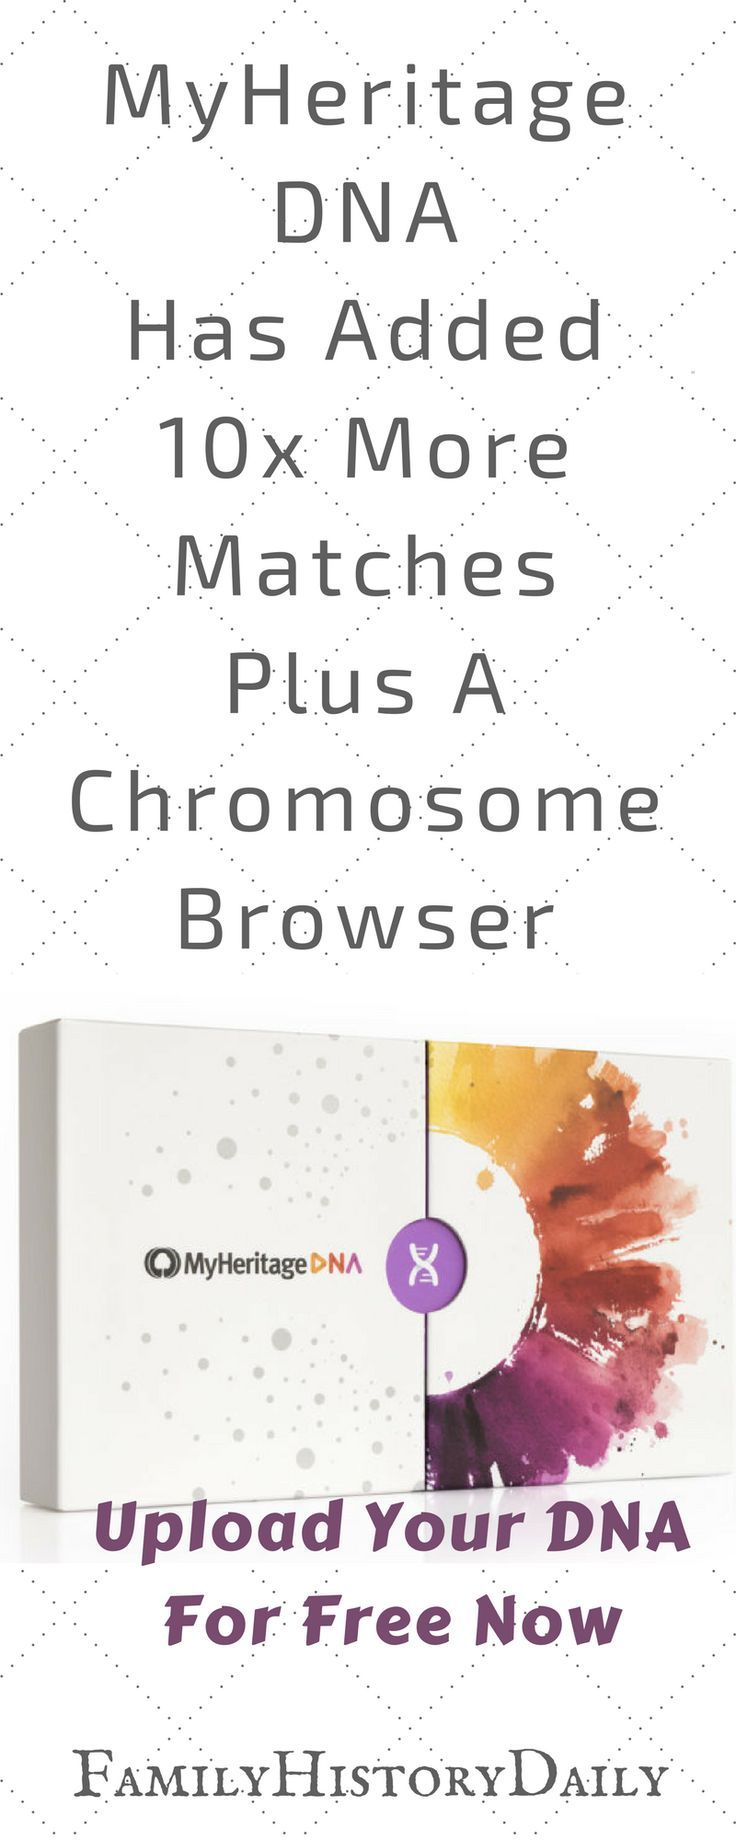 MyHeritage DNA has added 10x more matches and a chromosome browser. Upload your DNA data for free right now and make the most of your ancestry DNA test. #genealogydna #freegenealogy #familyhistory #ancestry